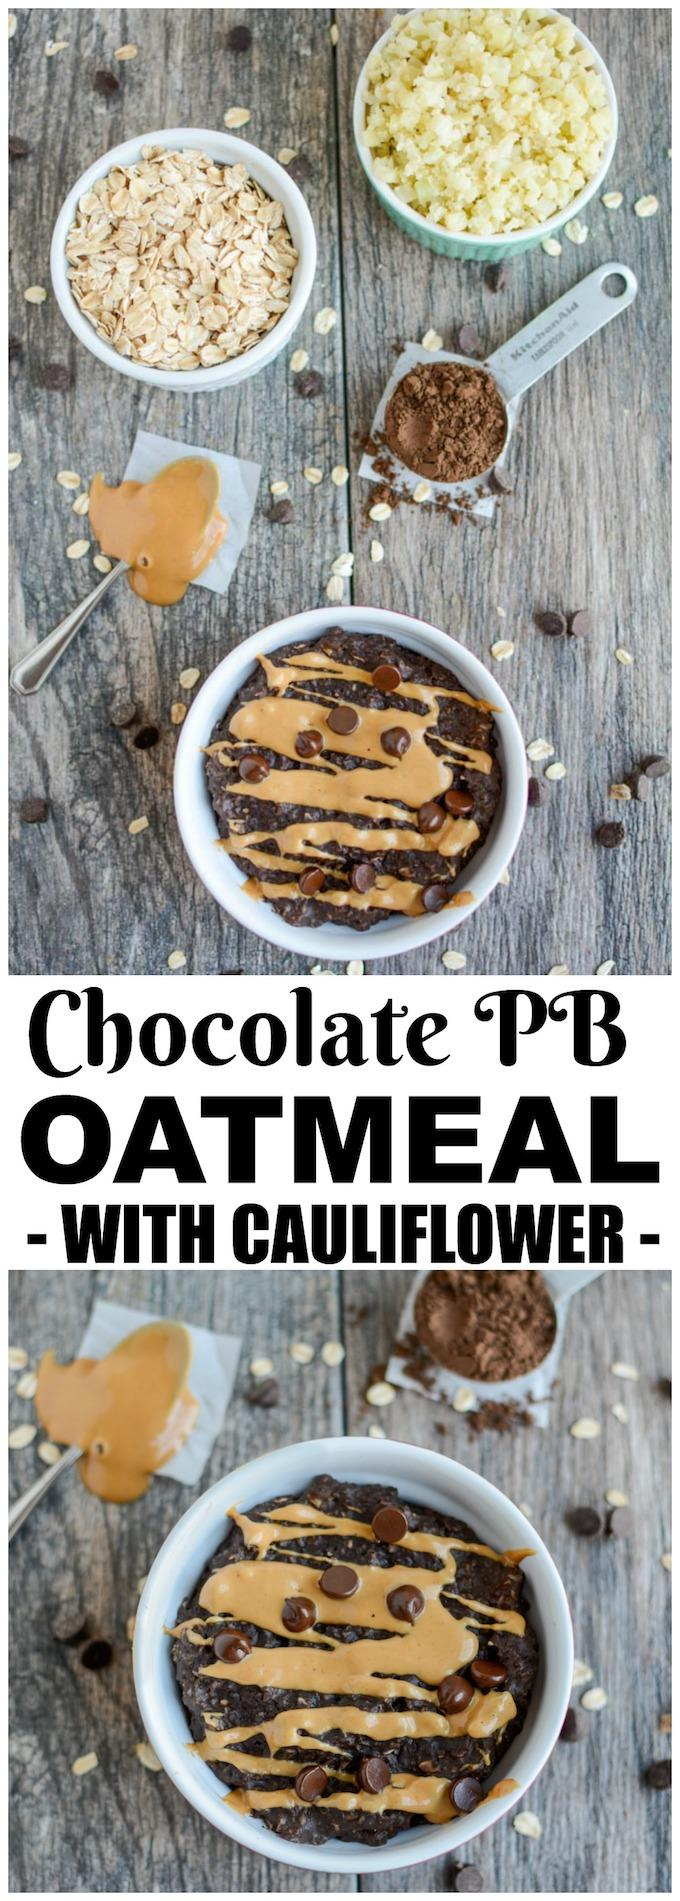 This Chocolate Peanut Butter Cauliflower Oatmeal will be a hit with kids and adults. Give your regular breakfast bowl of oats some added nutrients by blending in some steamed cauliflower!